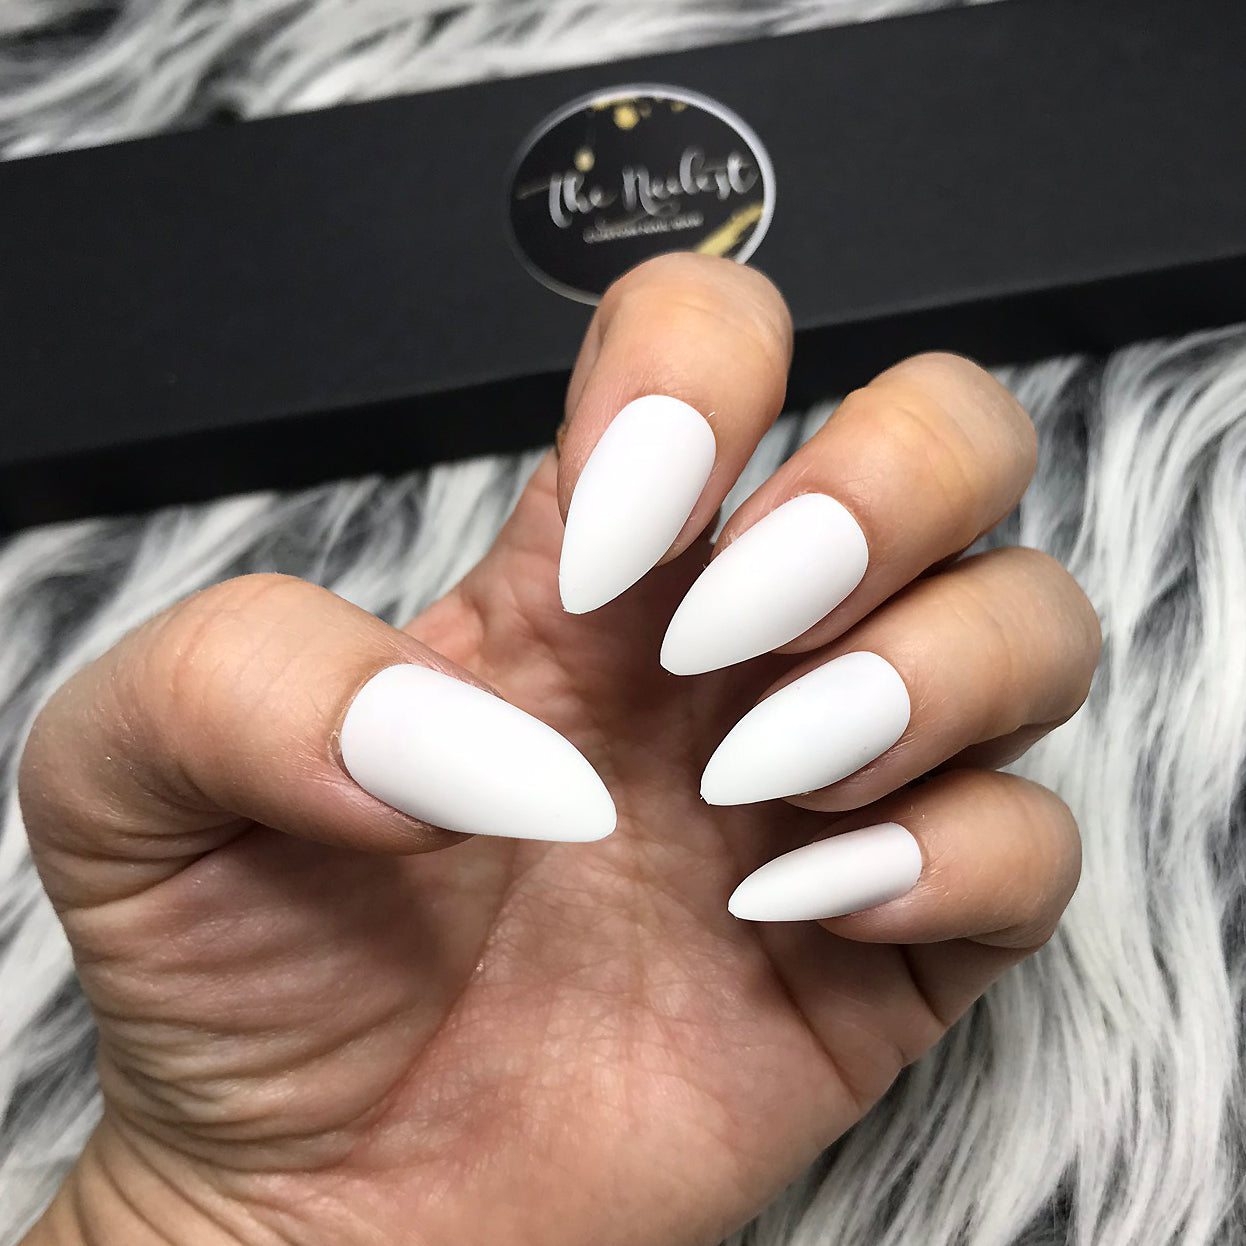 INSTANT GLAM-SOLID MATTE WHITE STILETTO SET